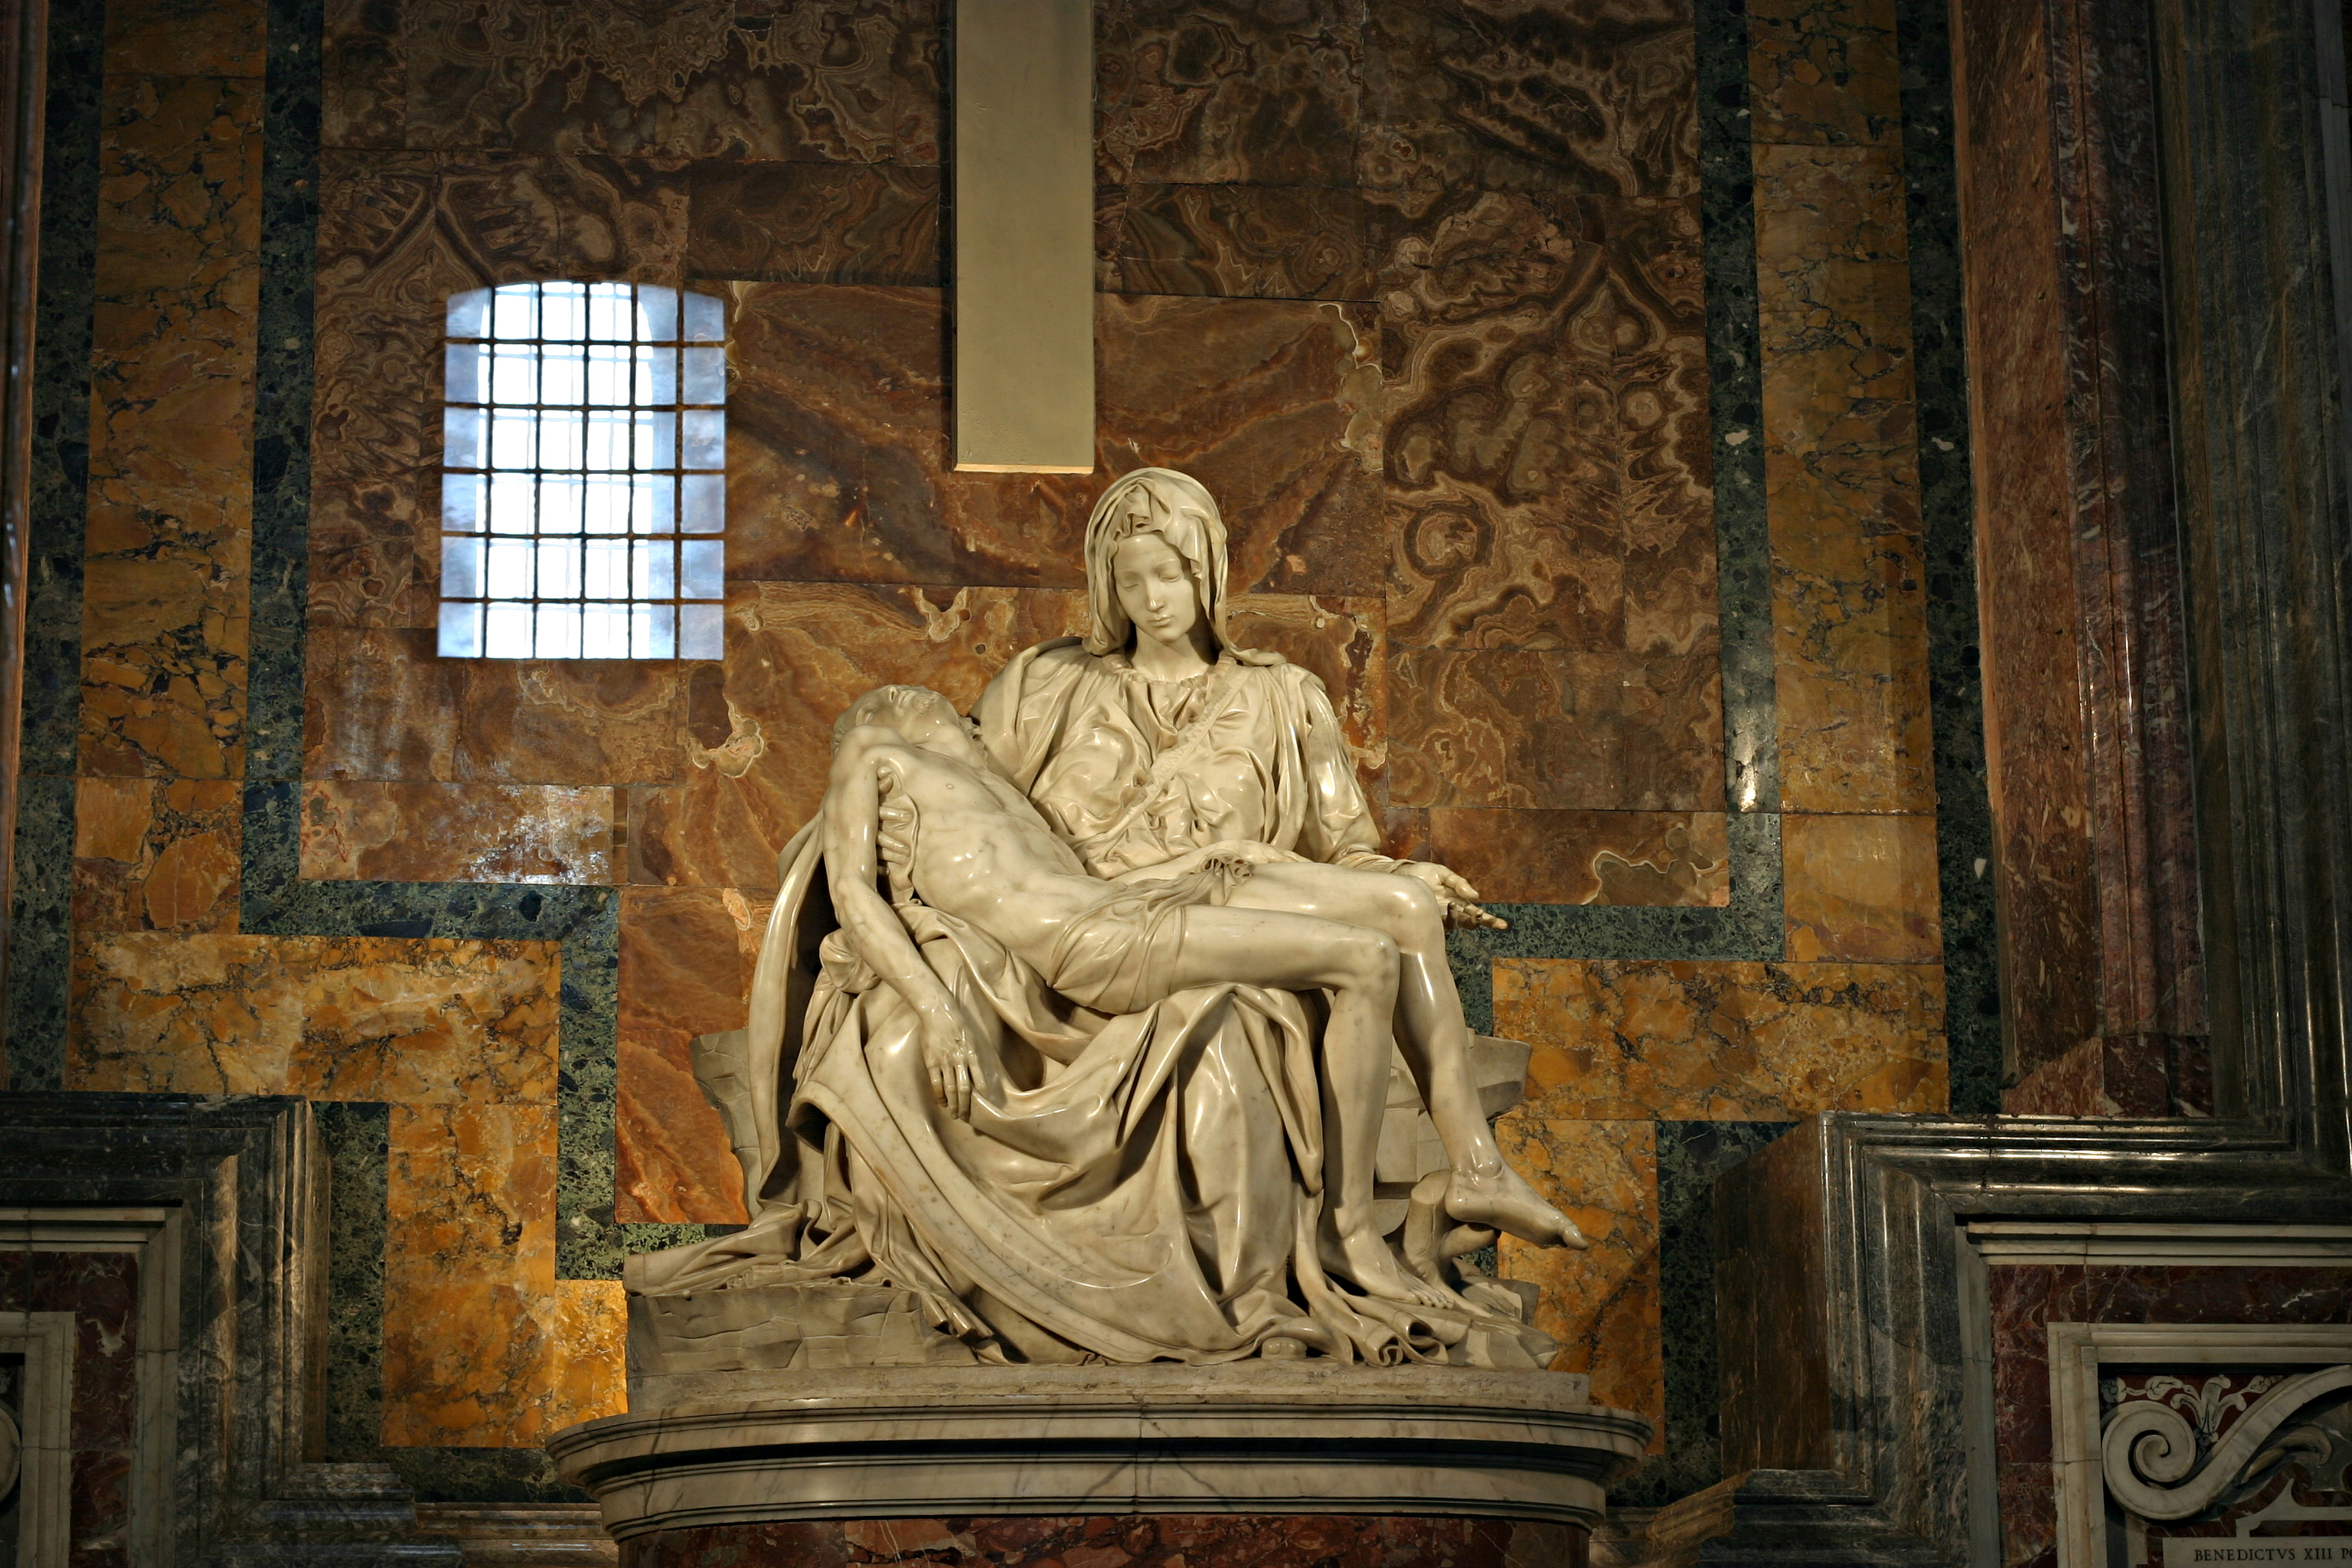 http://upload.wikimedia.org/wikipedia/commons/a/a7/Michelangelo%27s_Pieta_5450.jpg